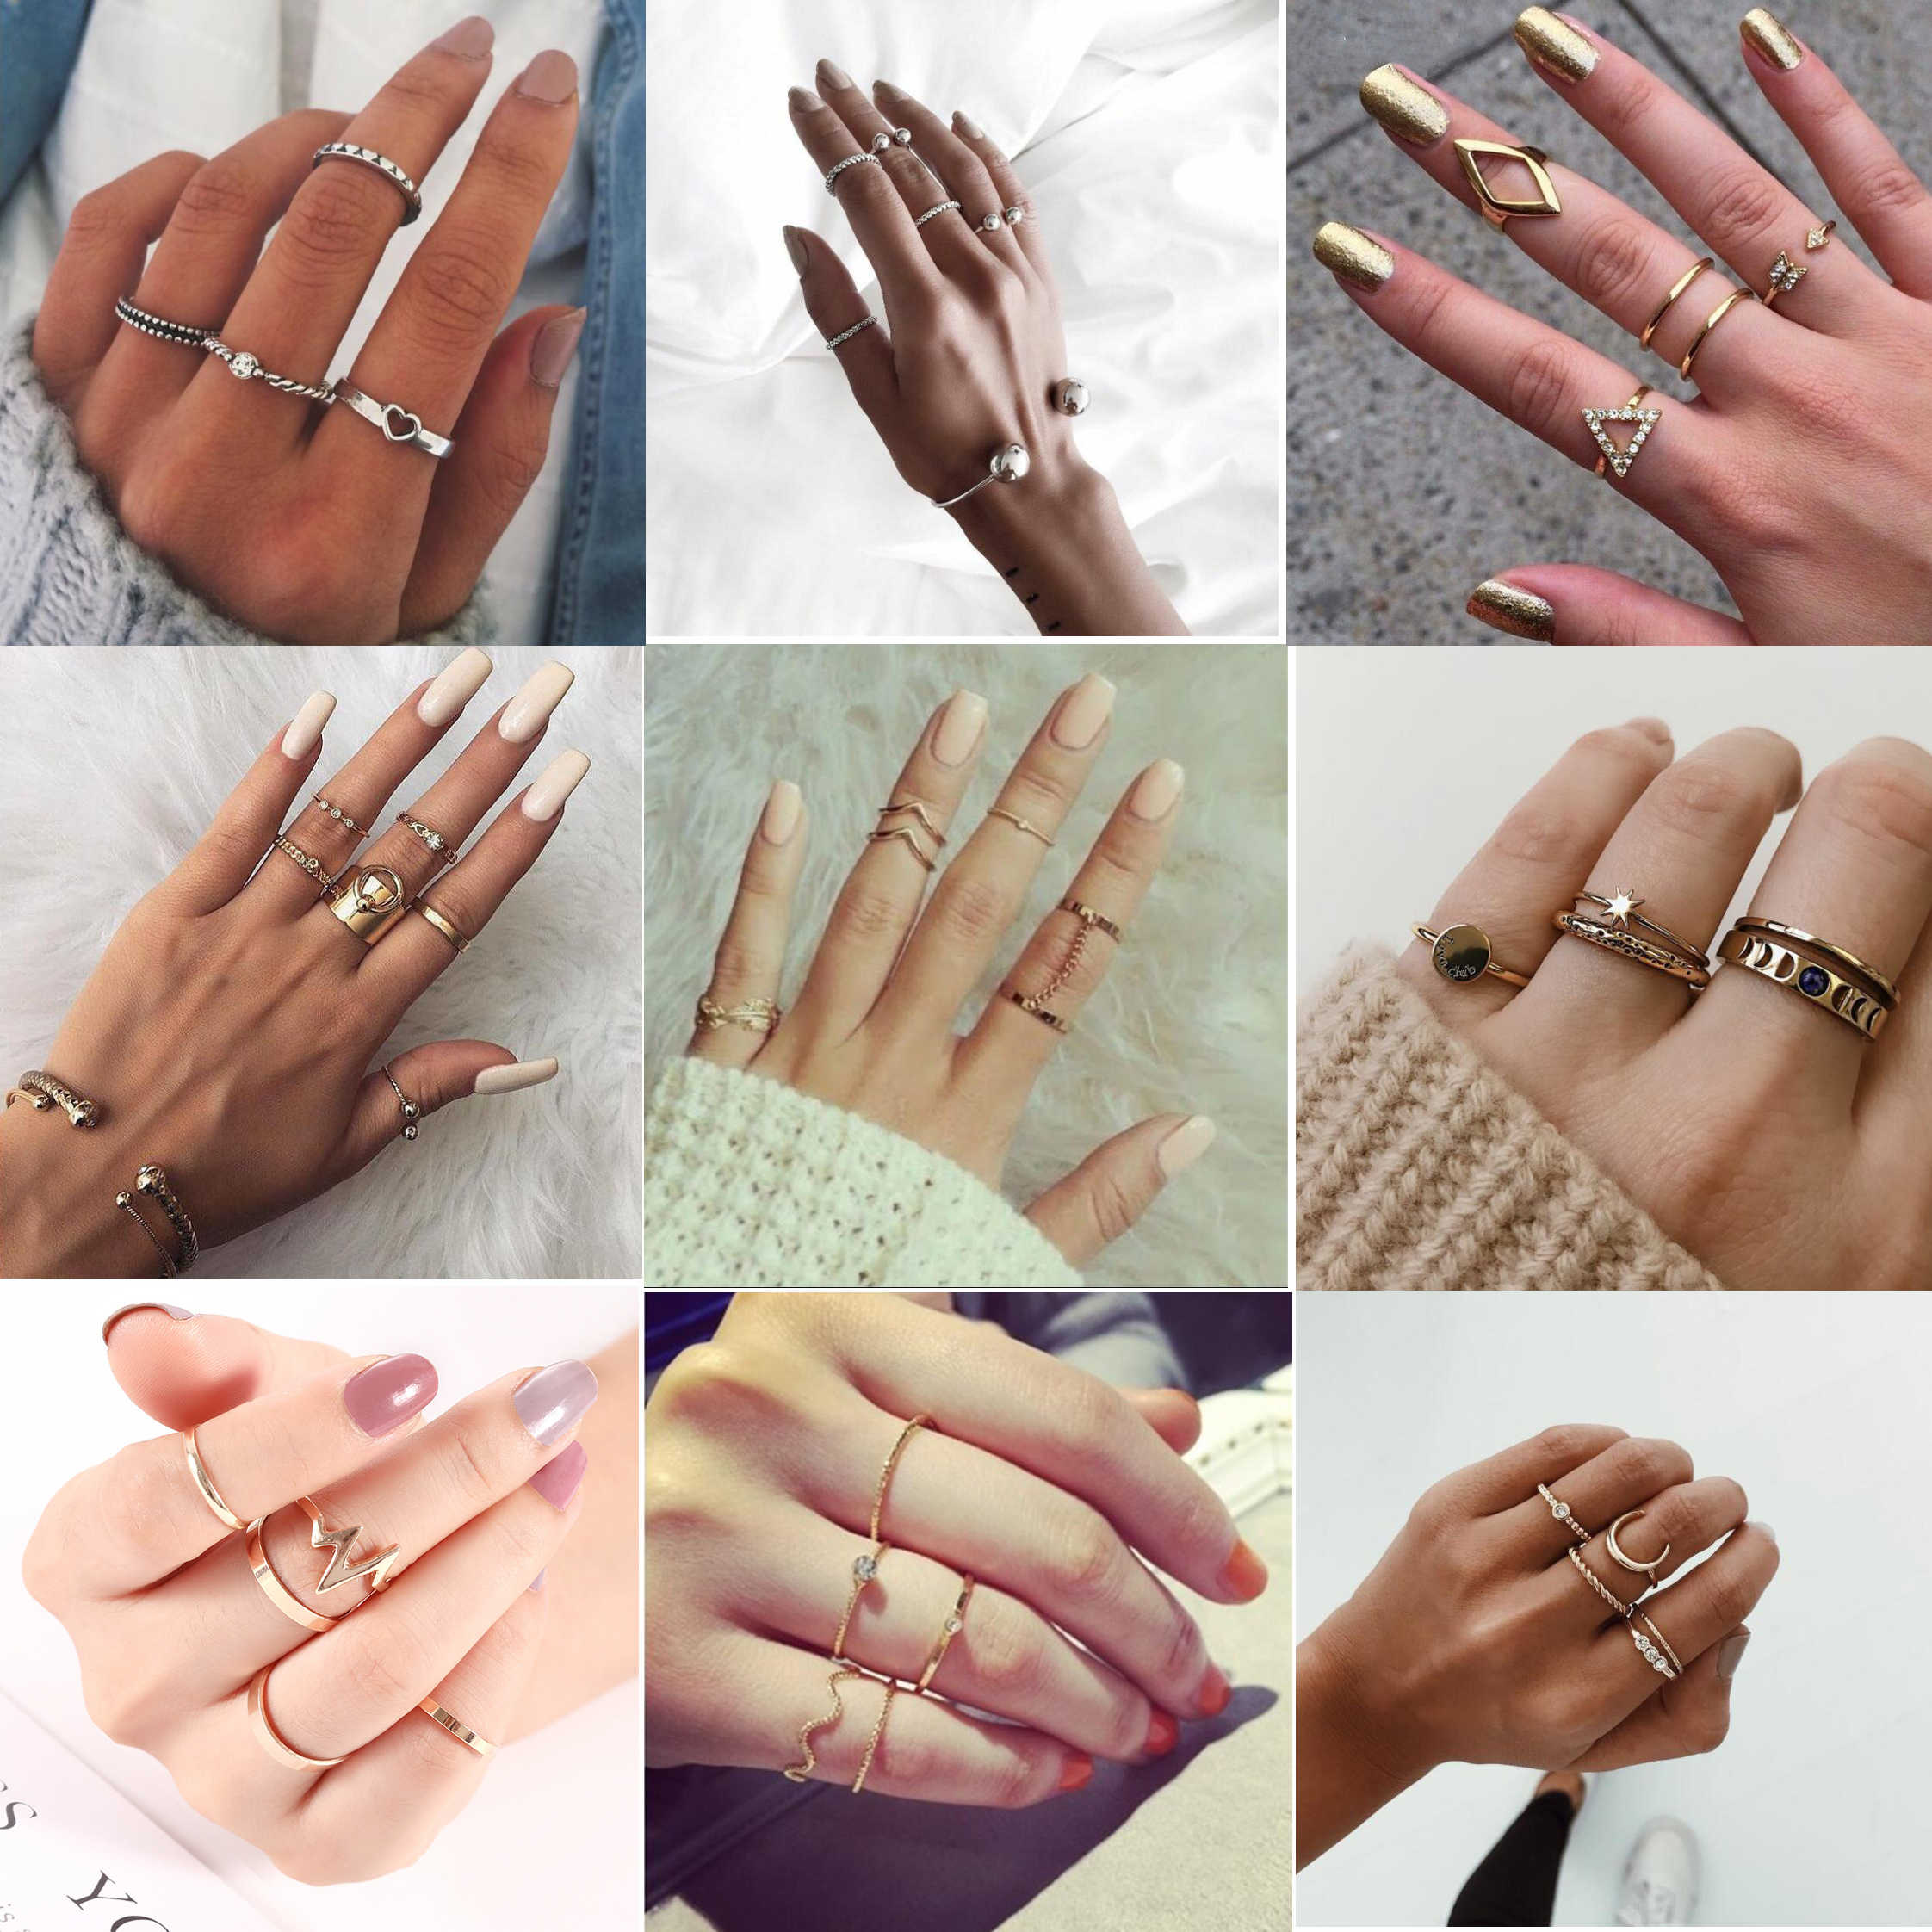 Women Ring Girls Gold Silver Retro Fashion Jewelry Trend Gift Vintage Ring Set Combination Boho 2019 New